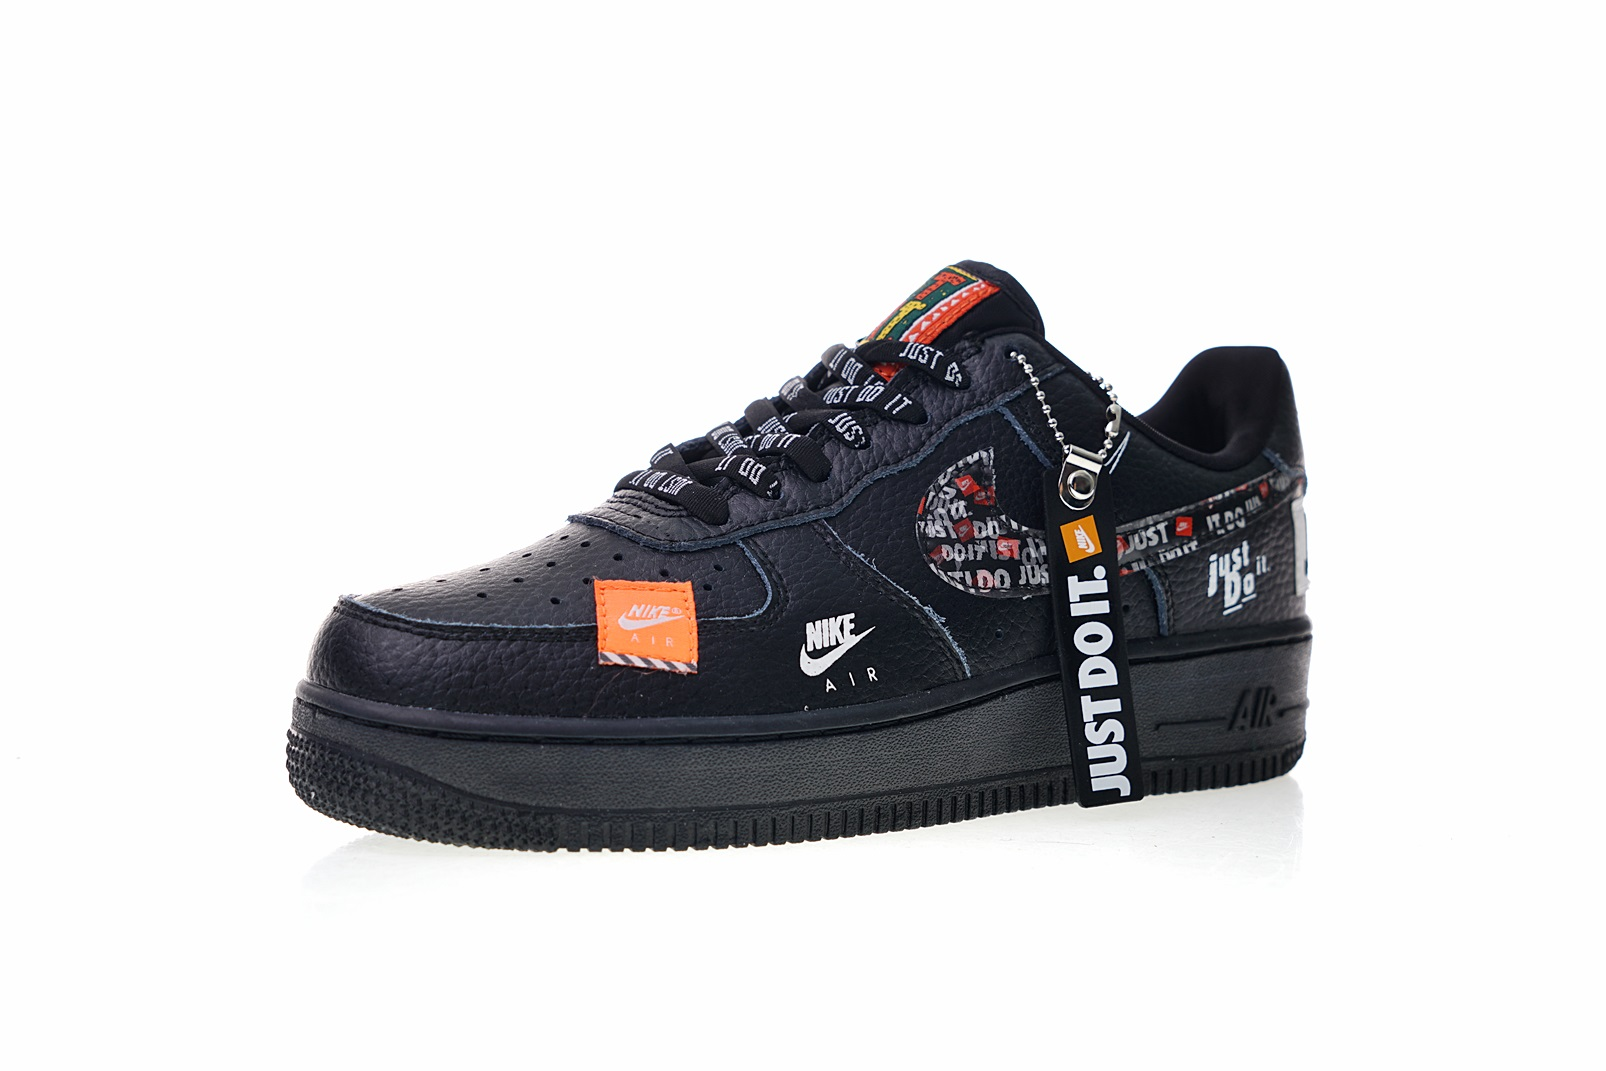 nike air force 1 just do it noir